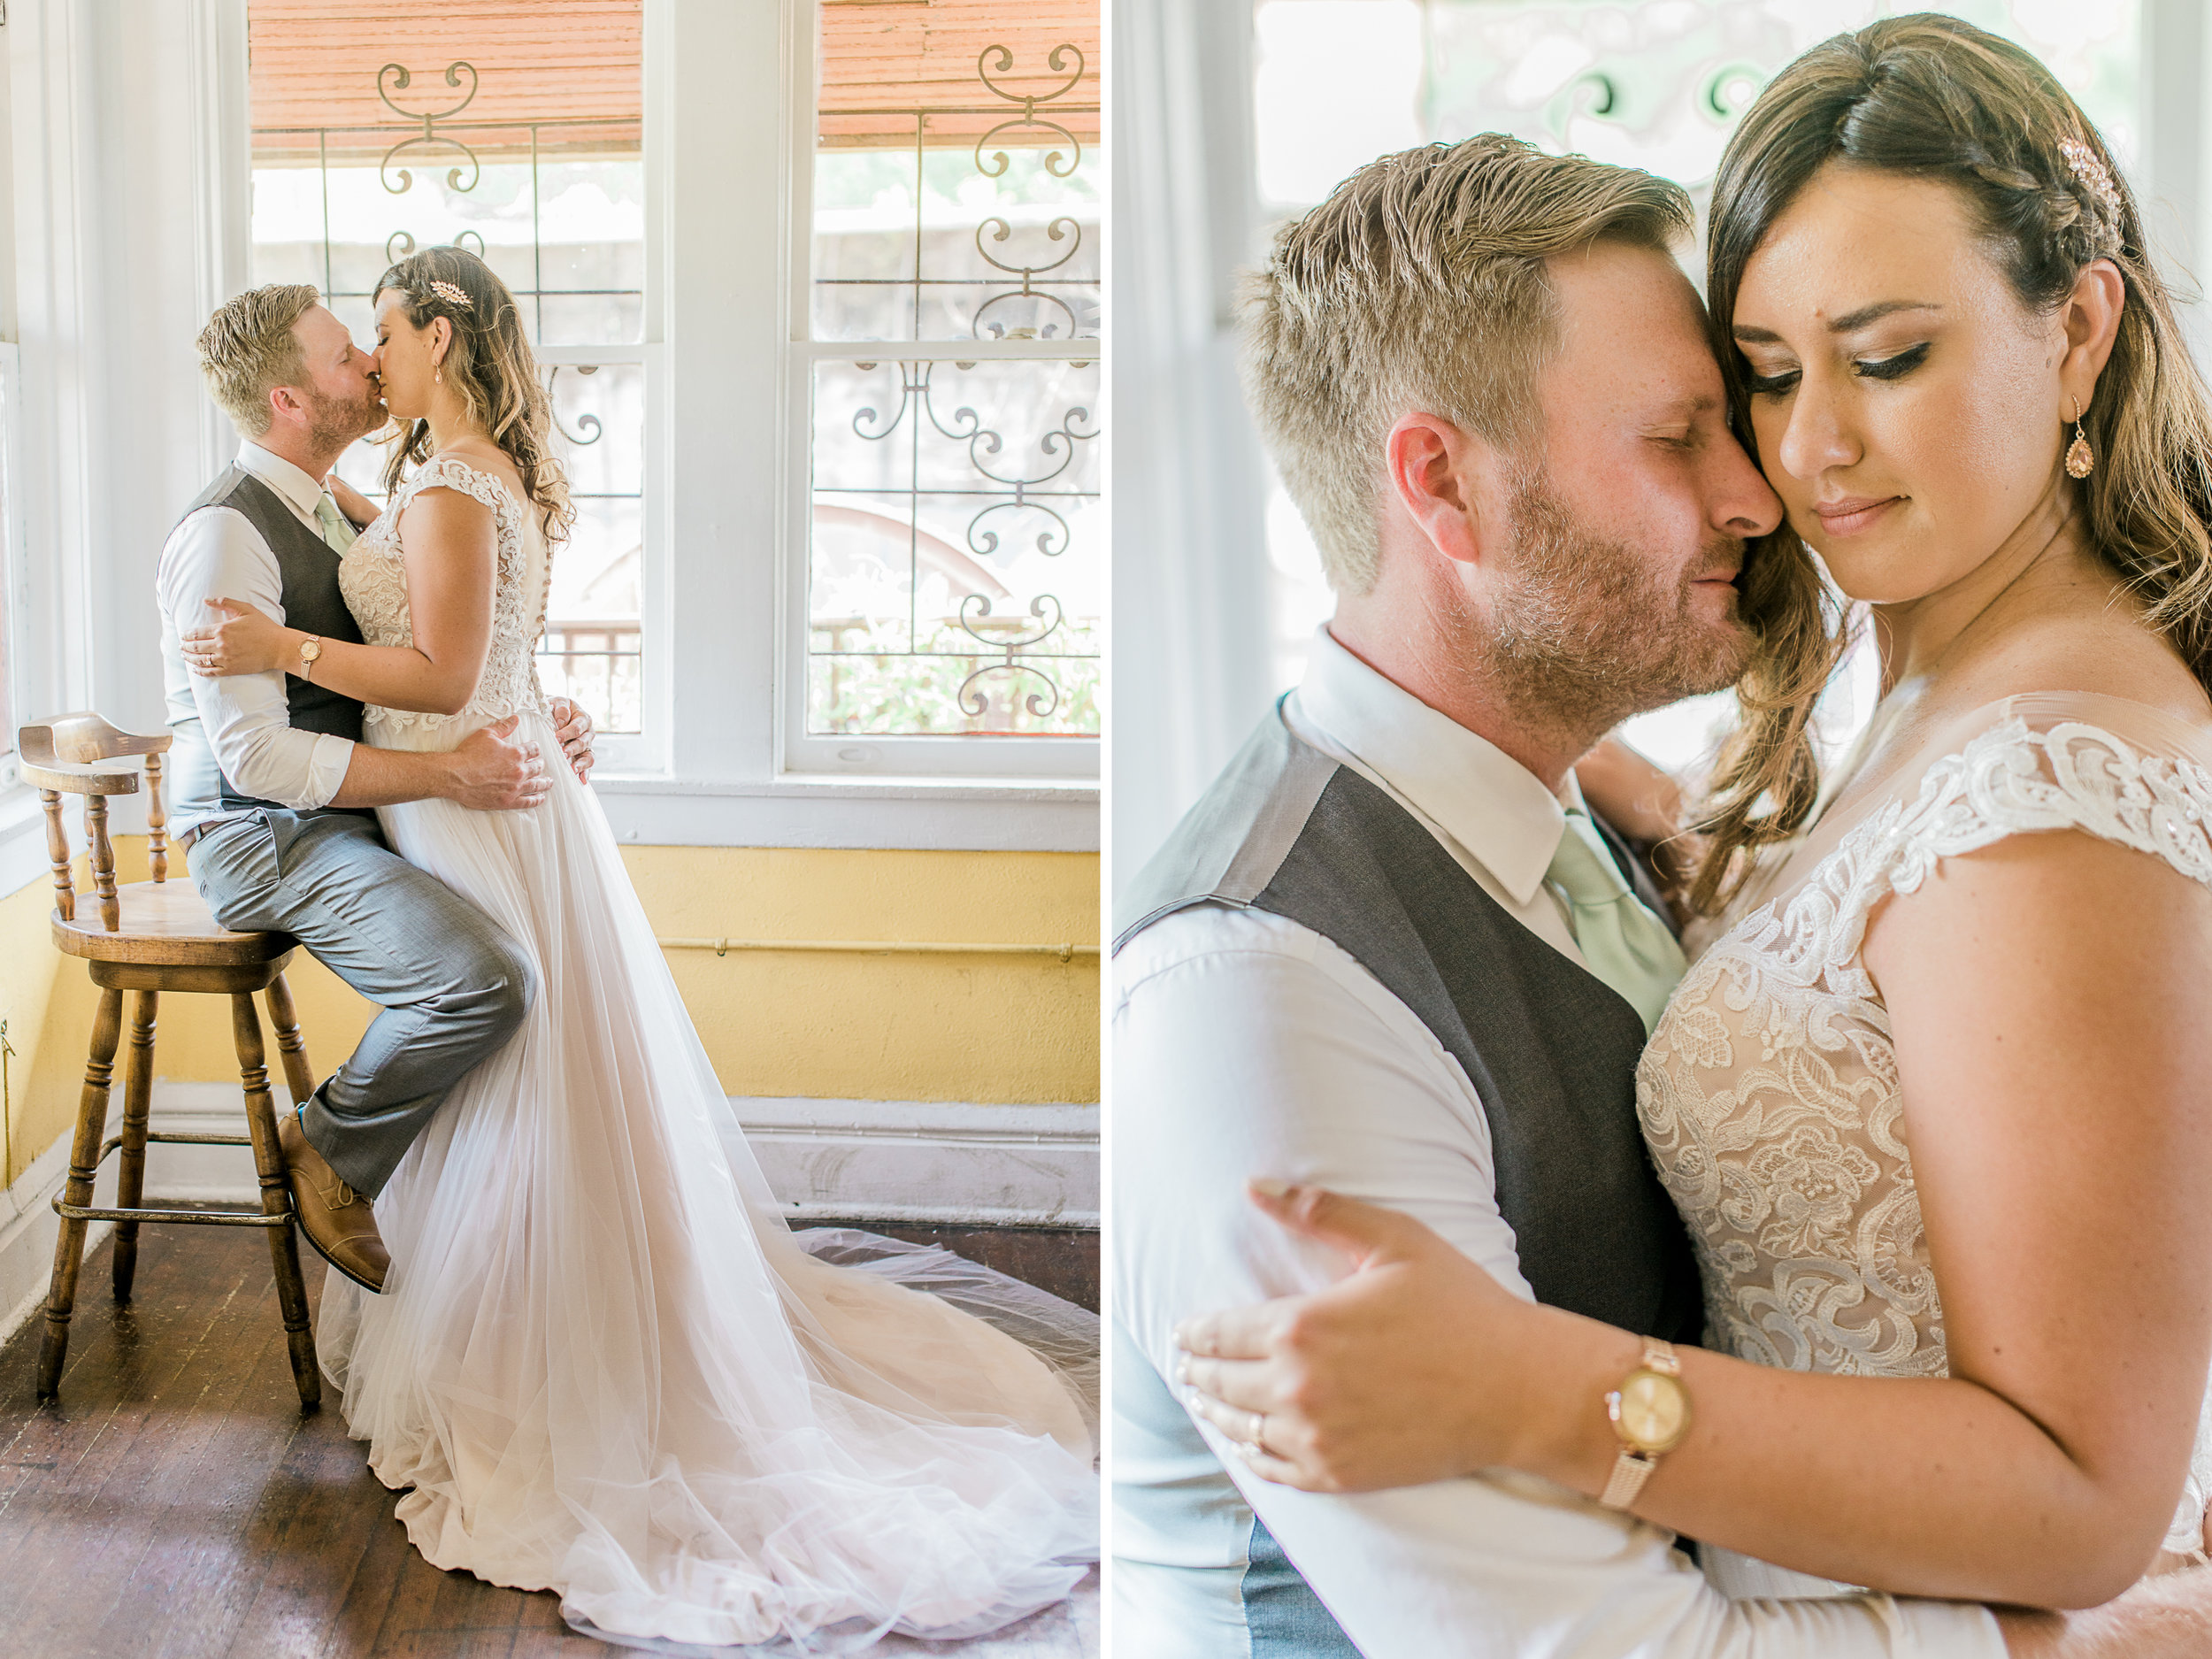 SmithWedding_HoustonTexasWeddingPhotographer_LightandAiry_FilmPhotographer_AvantGarden_HoustonHeightsWedding18.jpg